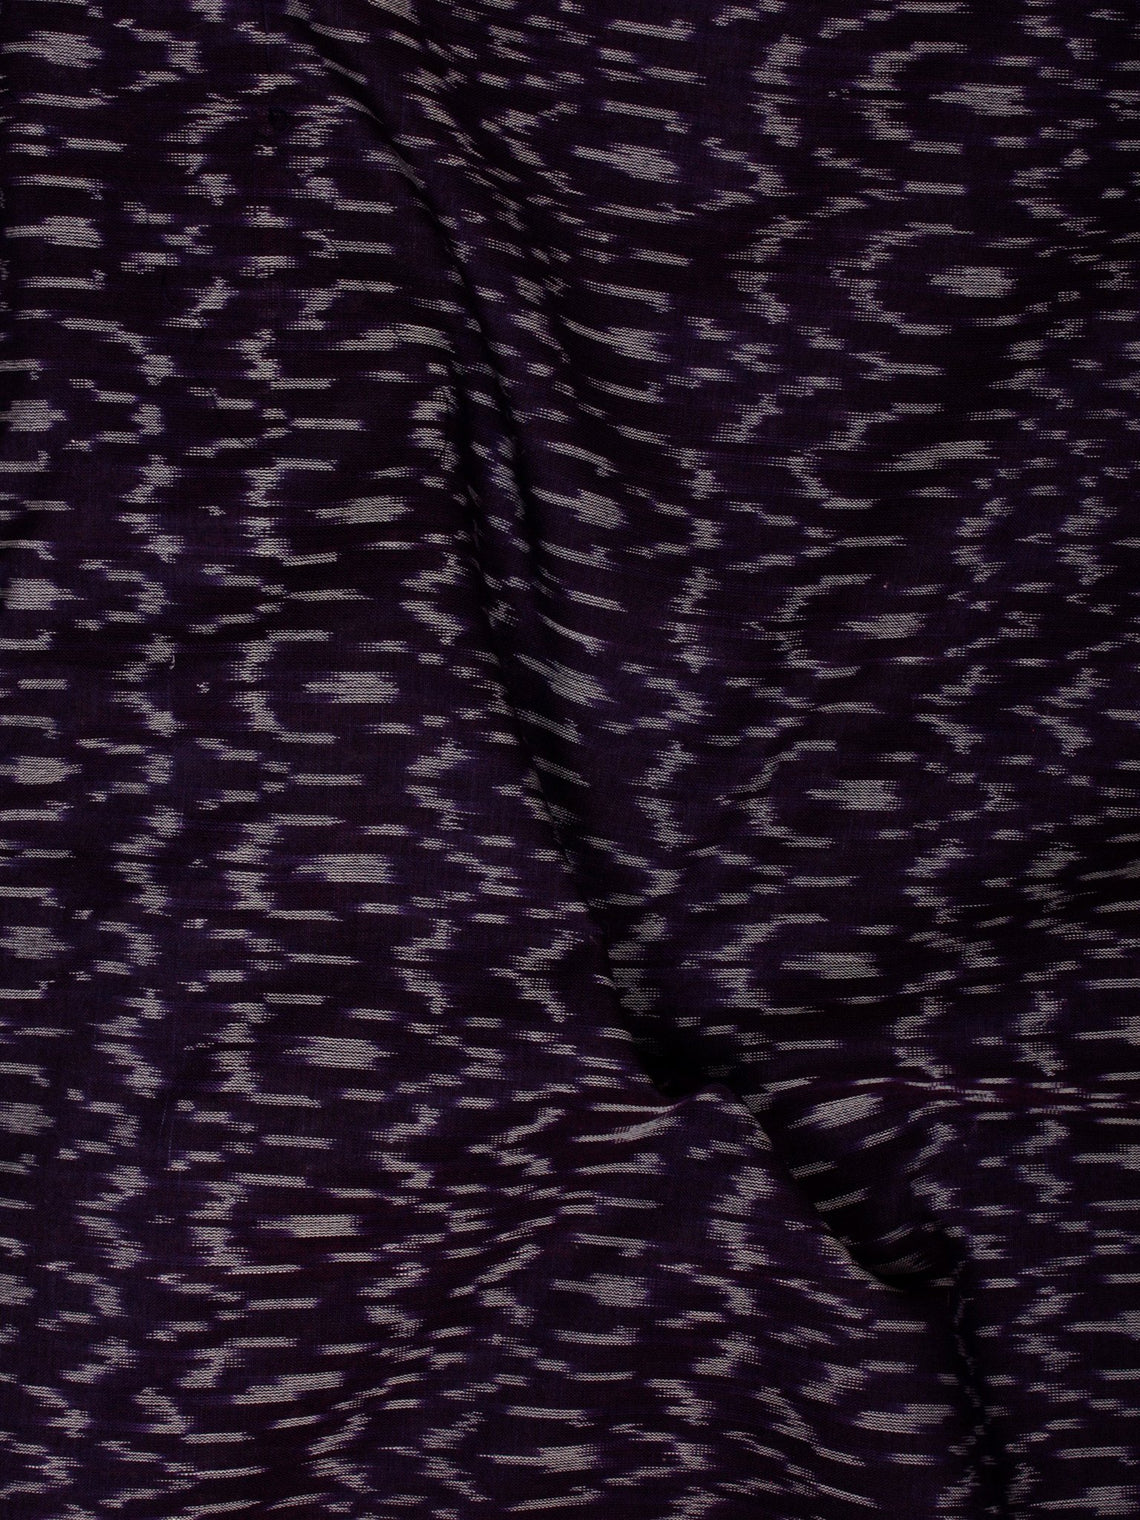 Purple Ivory Pochampally Hand Weaved Ikat Mercerised  Fabric Per Meter - F002F840